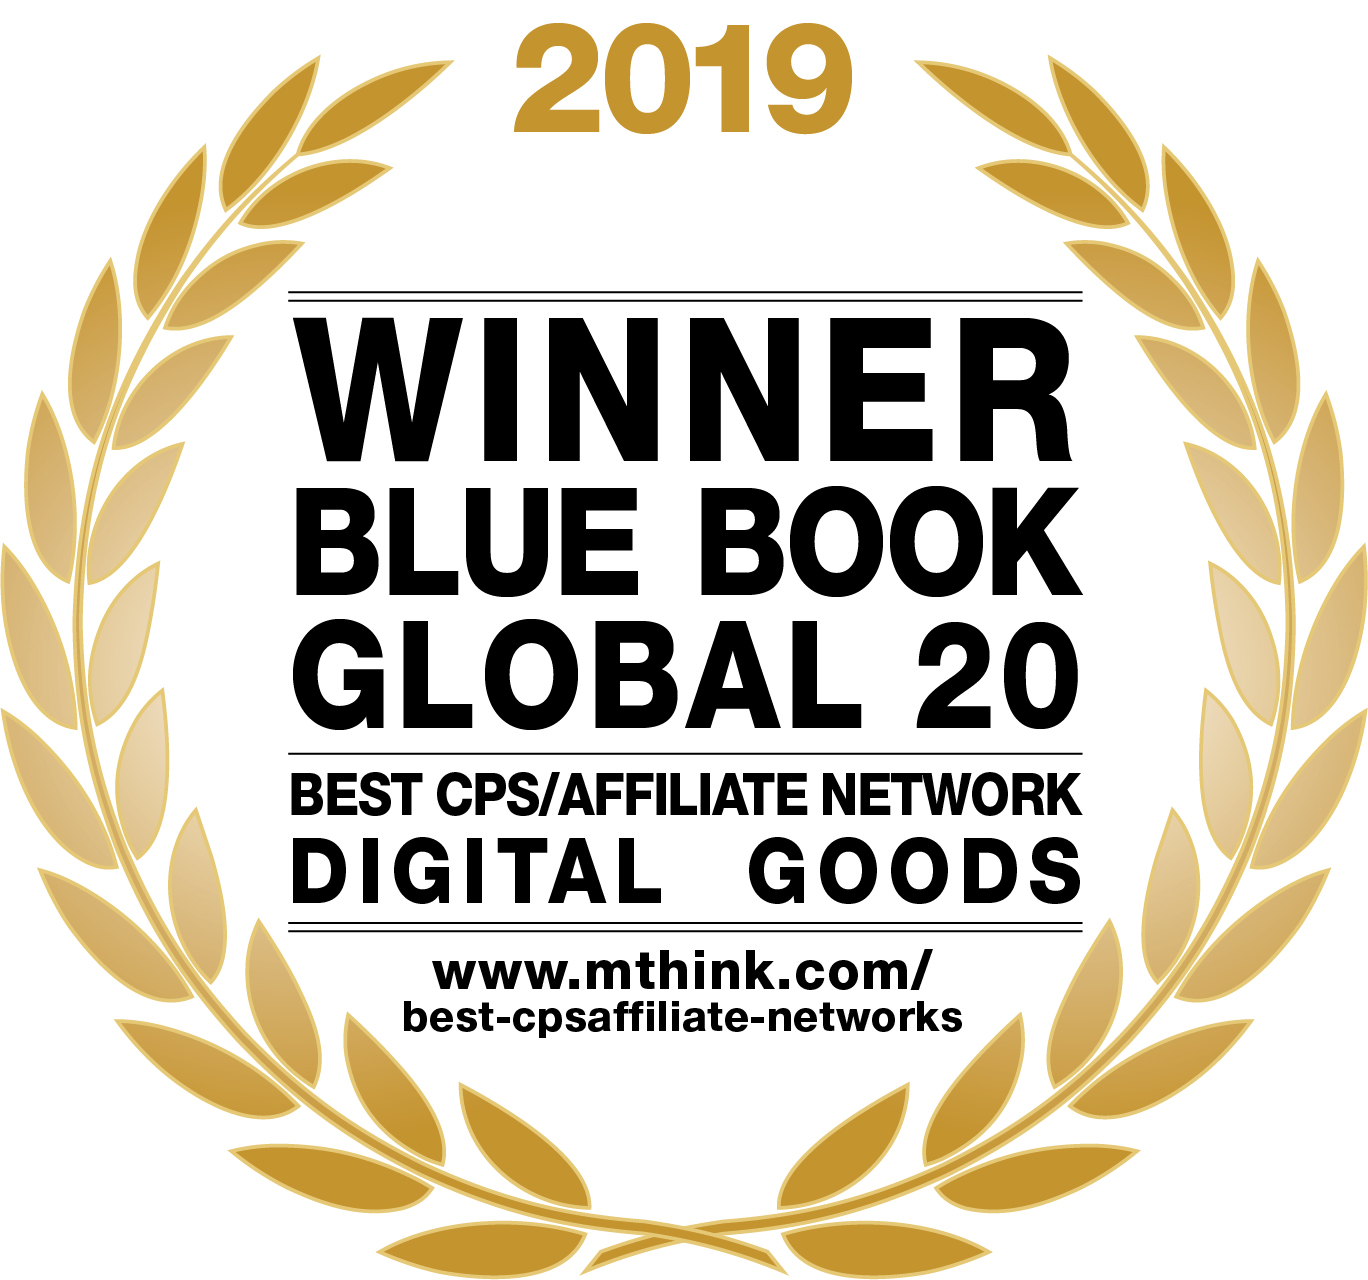 2Checkout's Affiliate Network Leading mThink Blue Book in Digital Goods Five Years Running